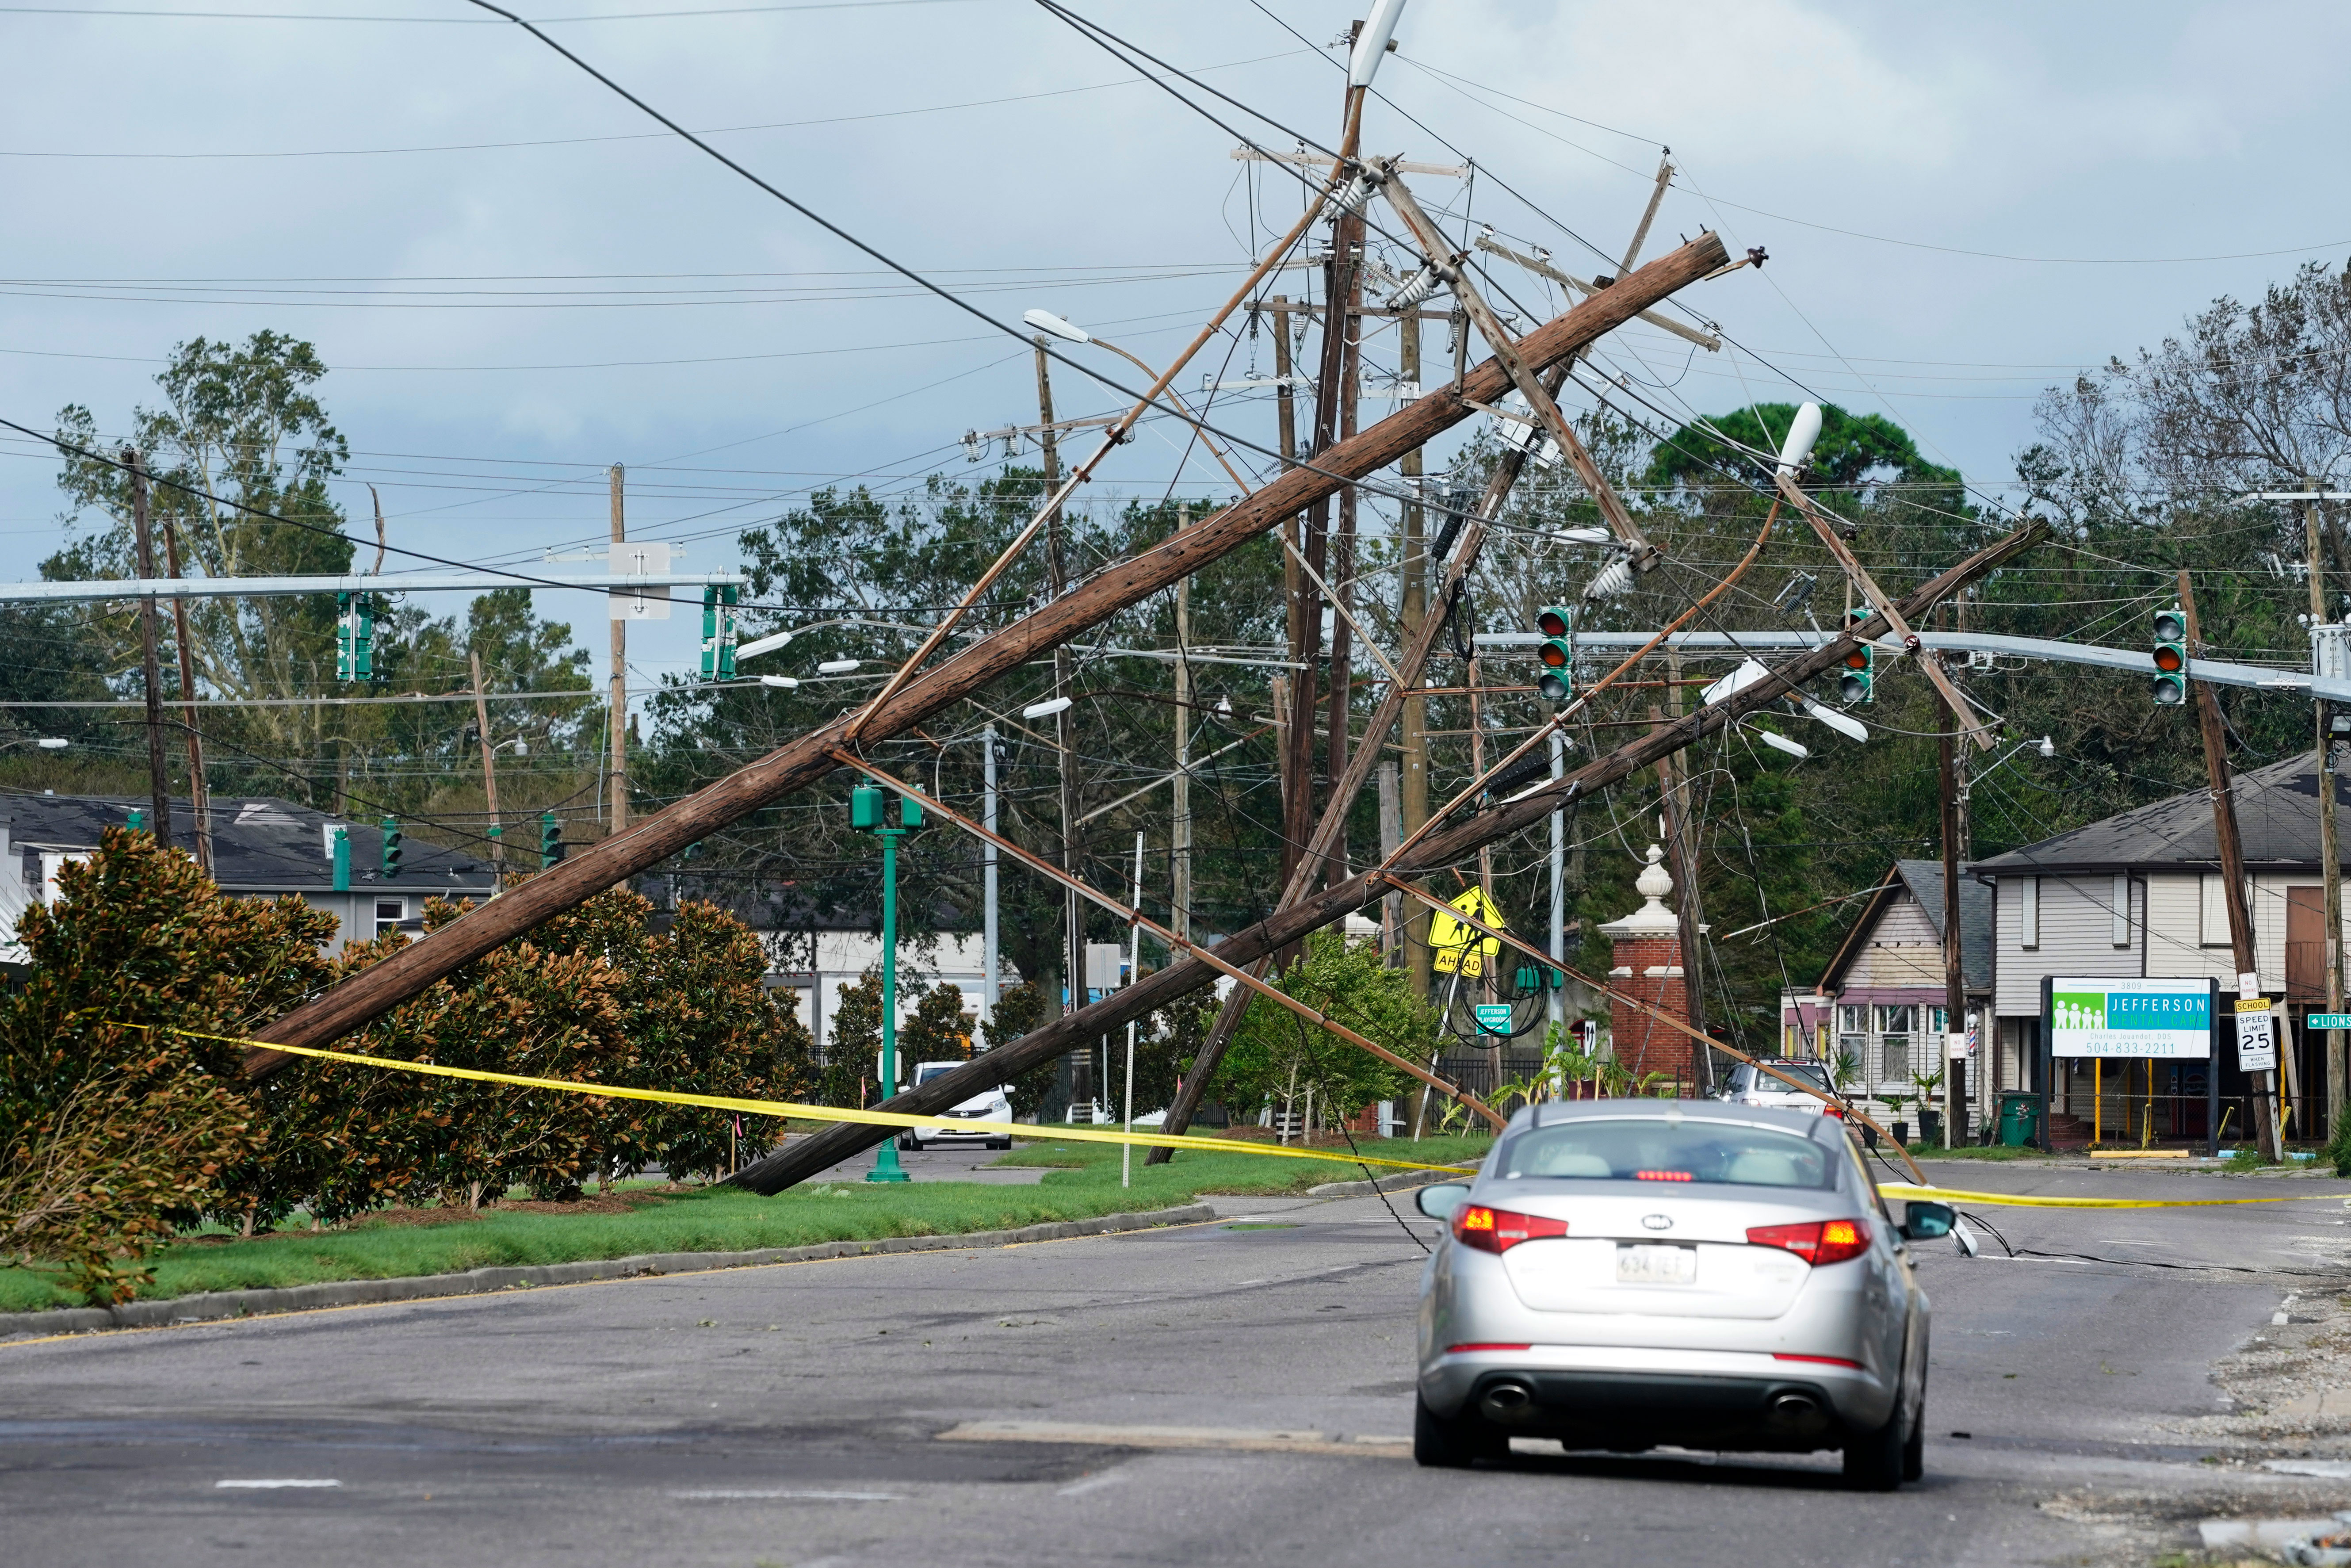 Downed power lines are seen in Metairie, Louisiana, on August 30.